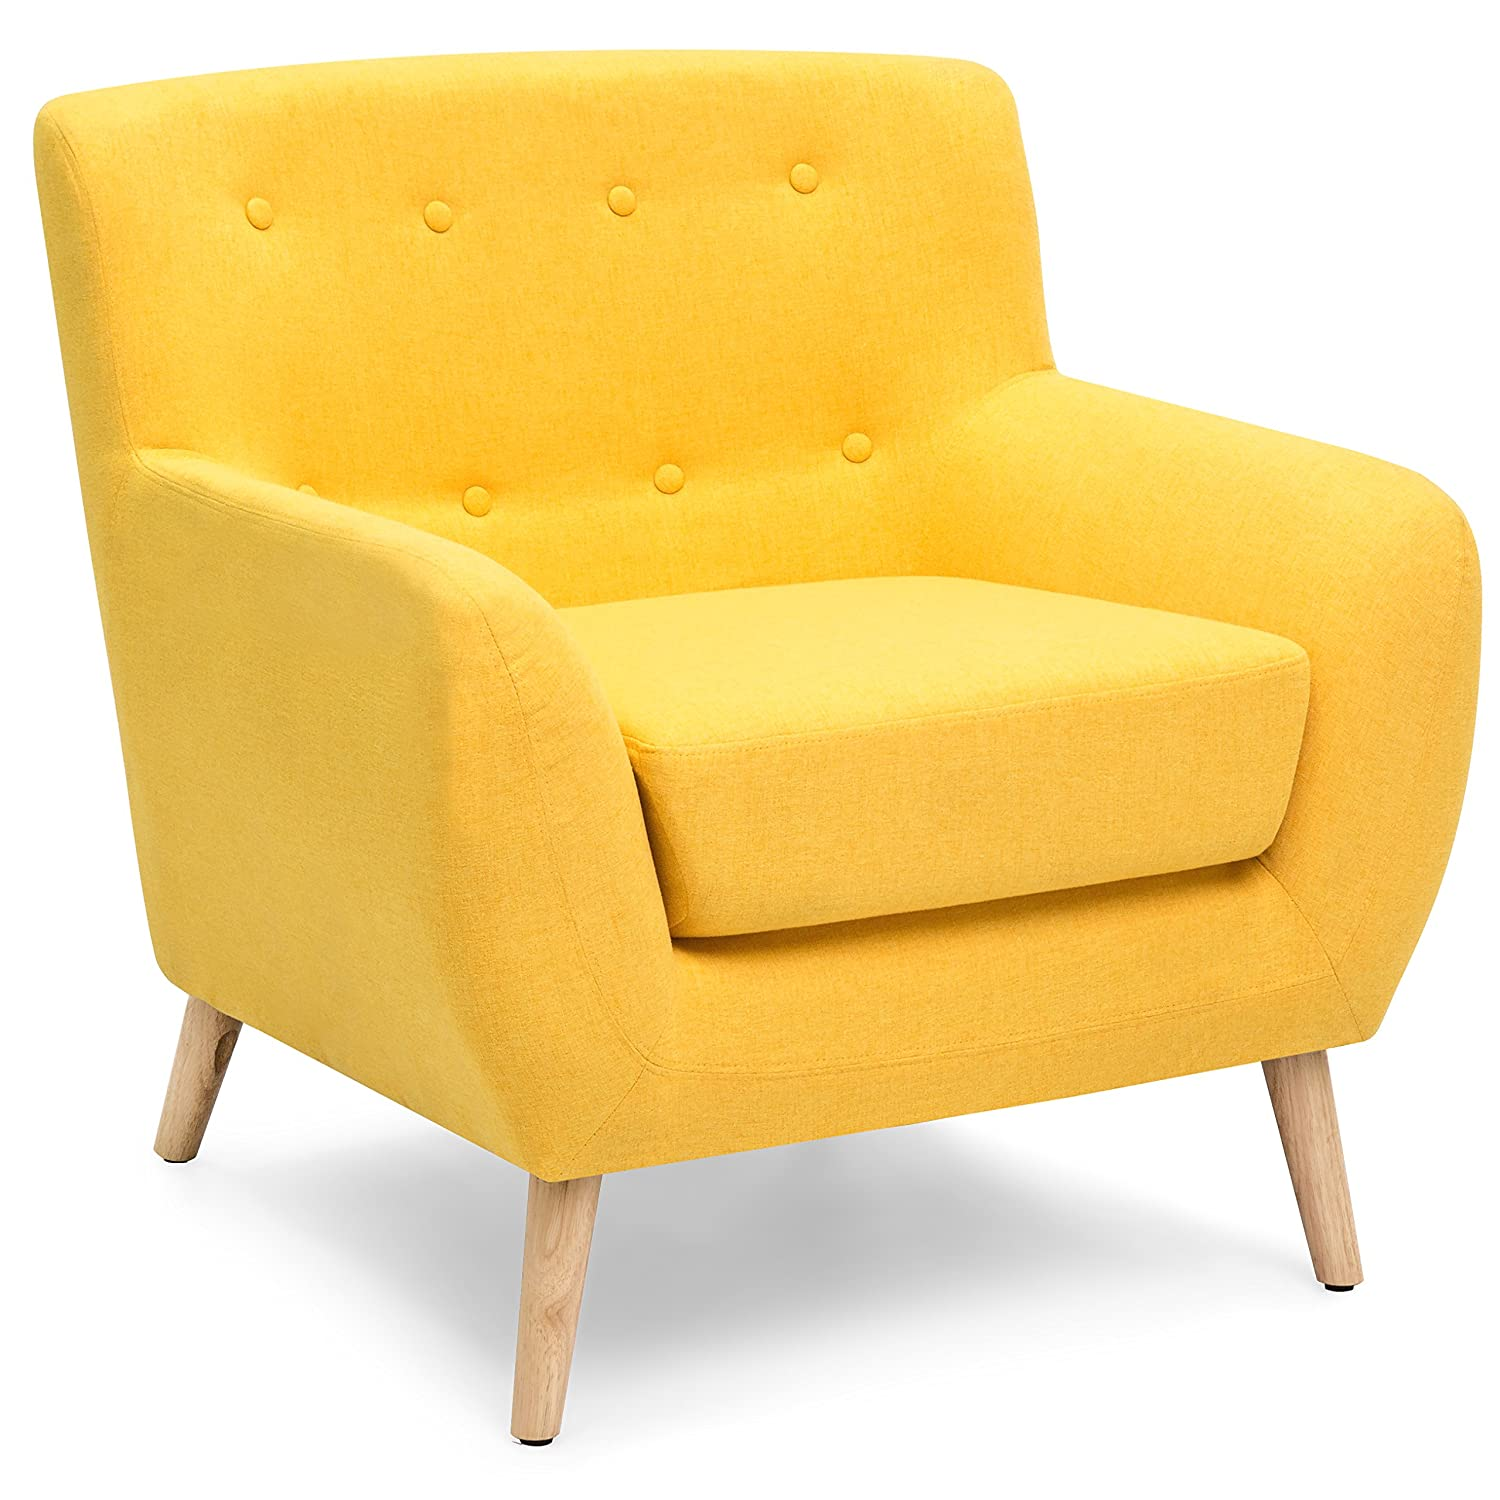 Peachy Best Choice Products Mid Century Modern Linen Upholstered Button Tufted Accent Chair Yellow Inzonedesignstudio Interior Chair Design Inzonedesignstudiocom